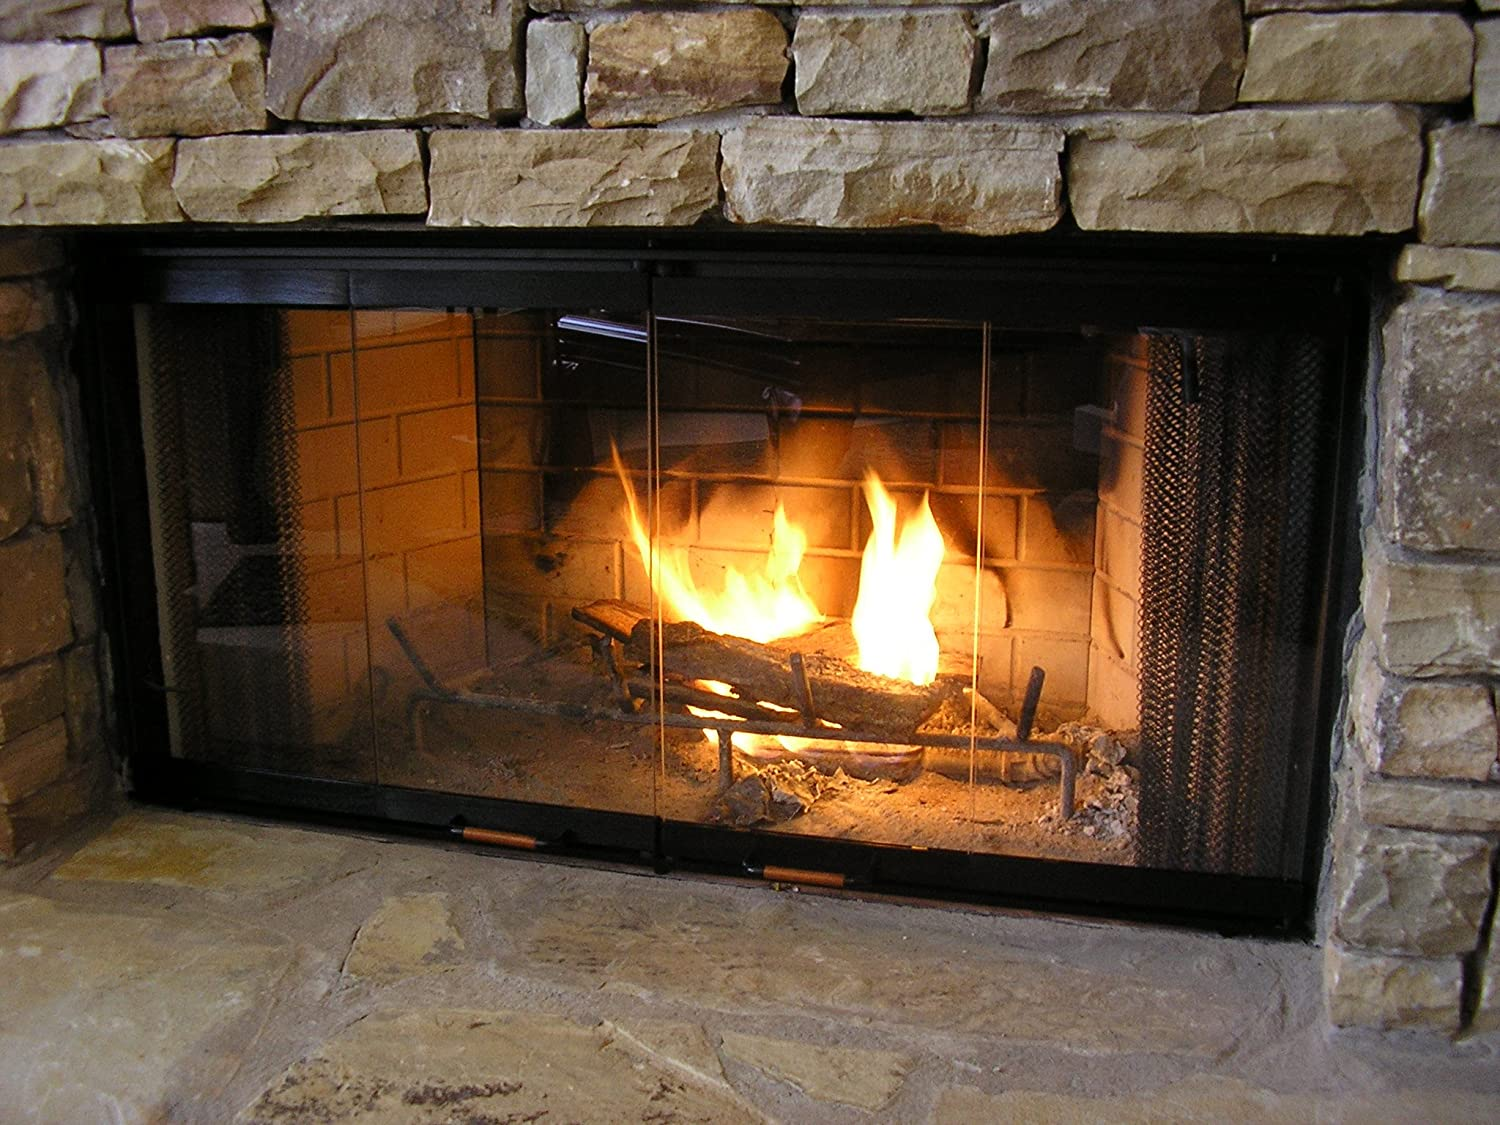 "Buy Heatilator Fireplace Doors - Black 42"" Series Glass Doors - DM1042: Fireplace Screens - Amazon.com ? FREE DELIVERY possible on eligible purchases"